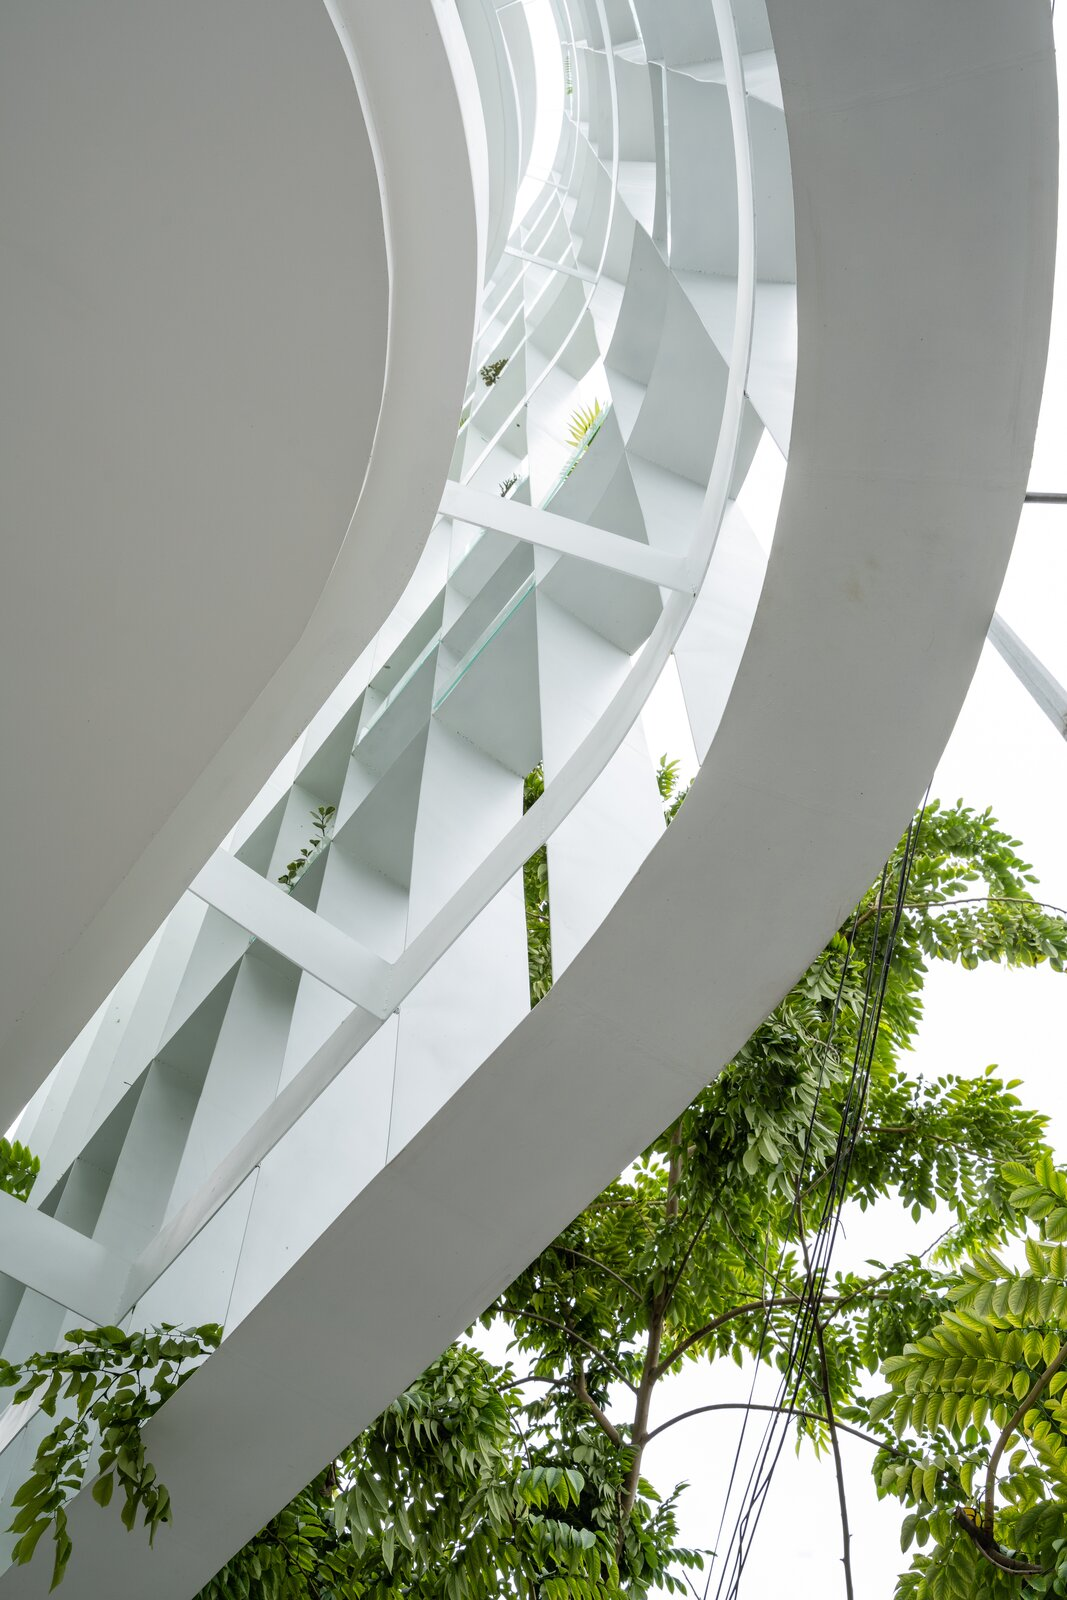 Exterior, Metal Siding Material, and Glass Siding Material  Photo 7 of 23 in A Translucent Tower in Vietnam Invites Visitors in for a Cup of Coffee